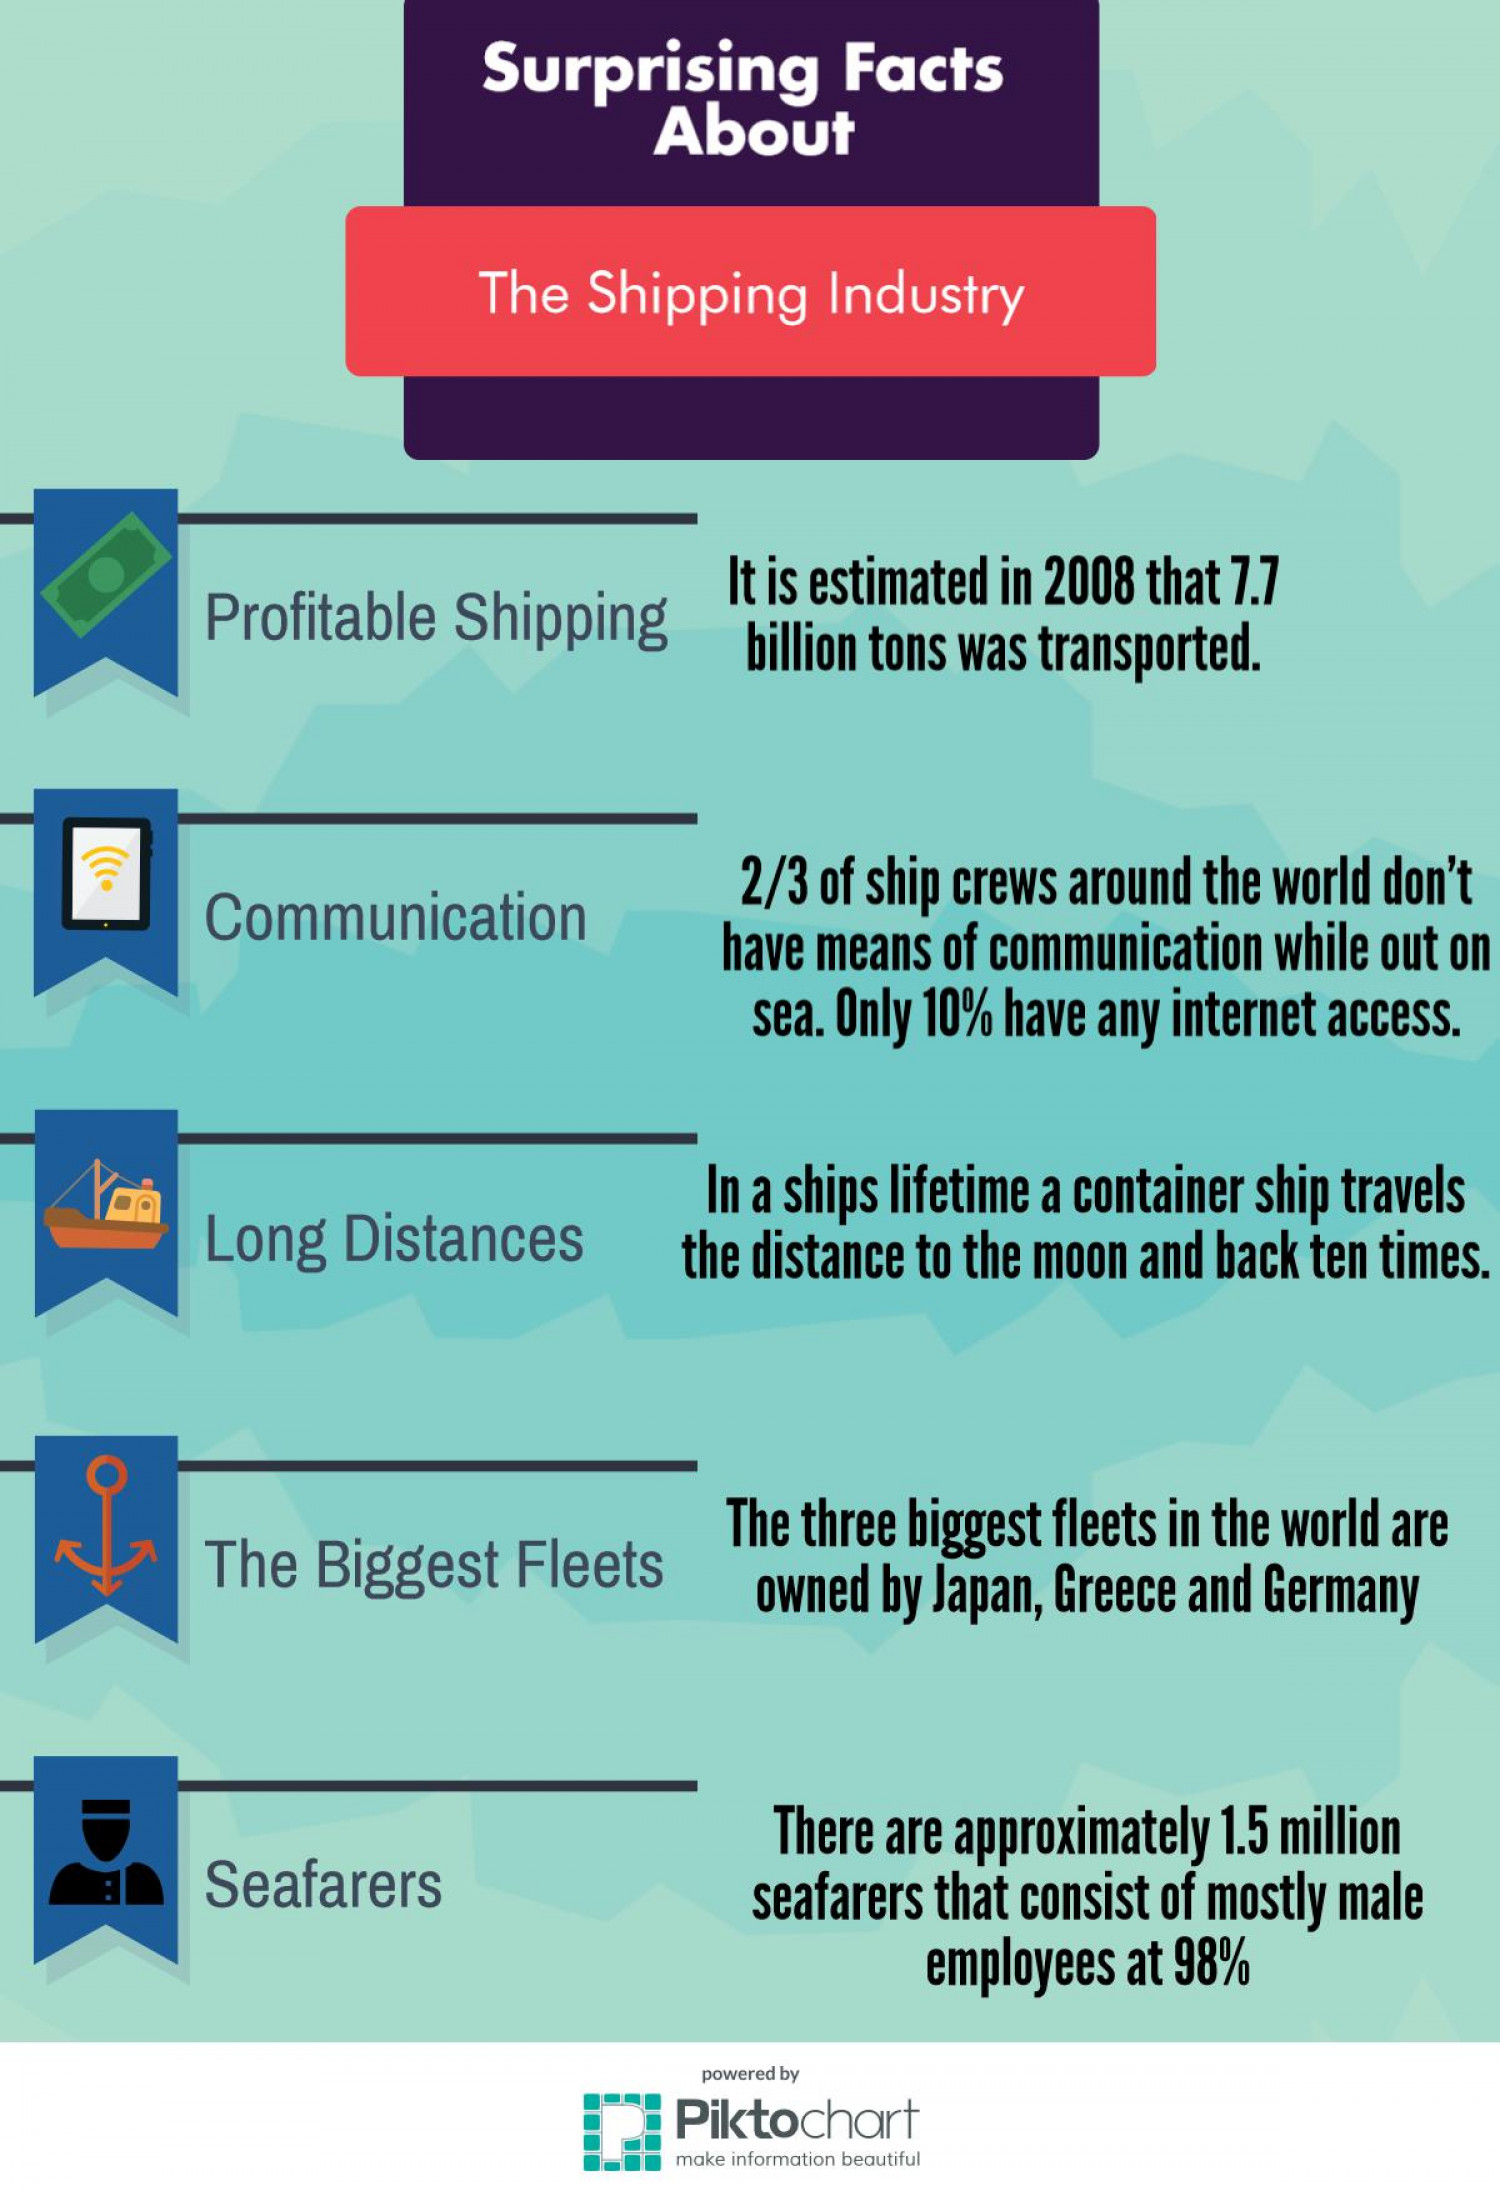 Surprising Facts About the Shipping Industry Infographic